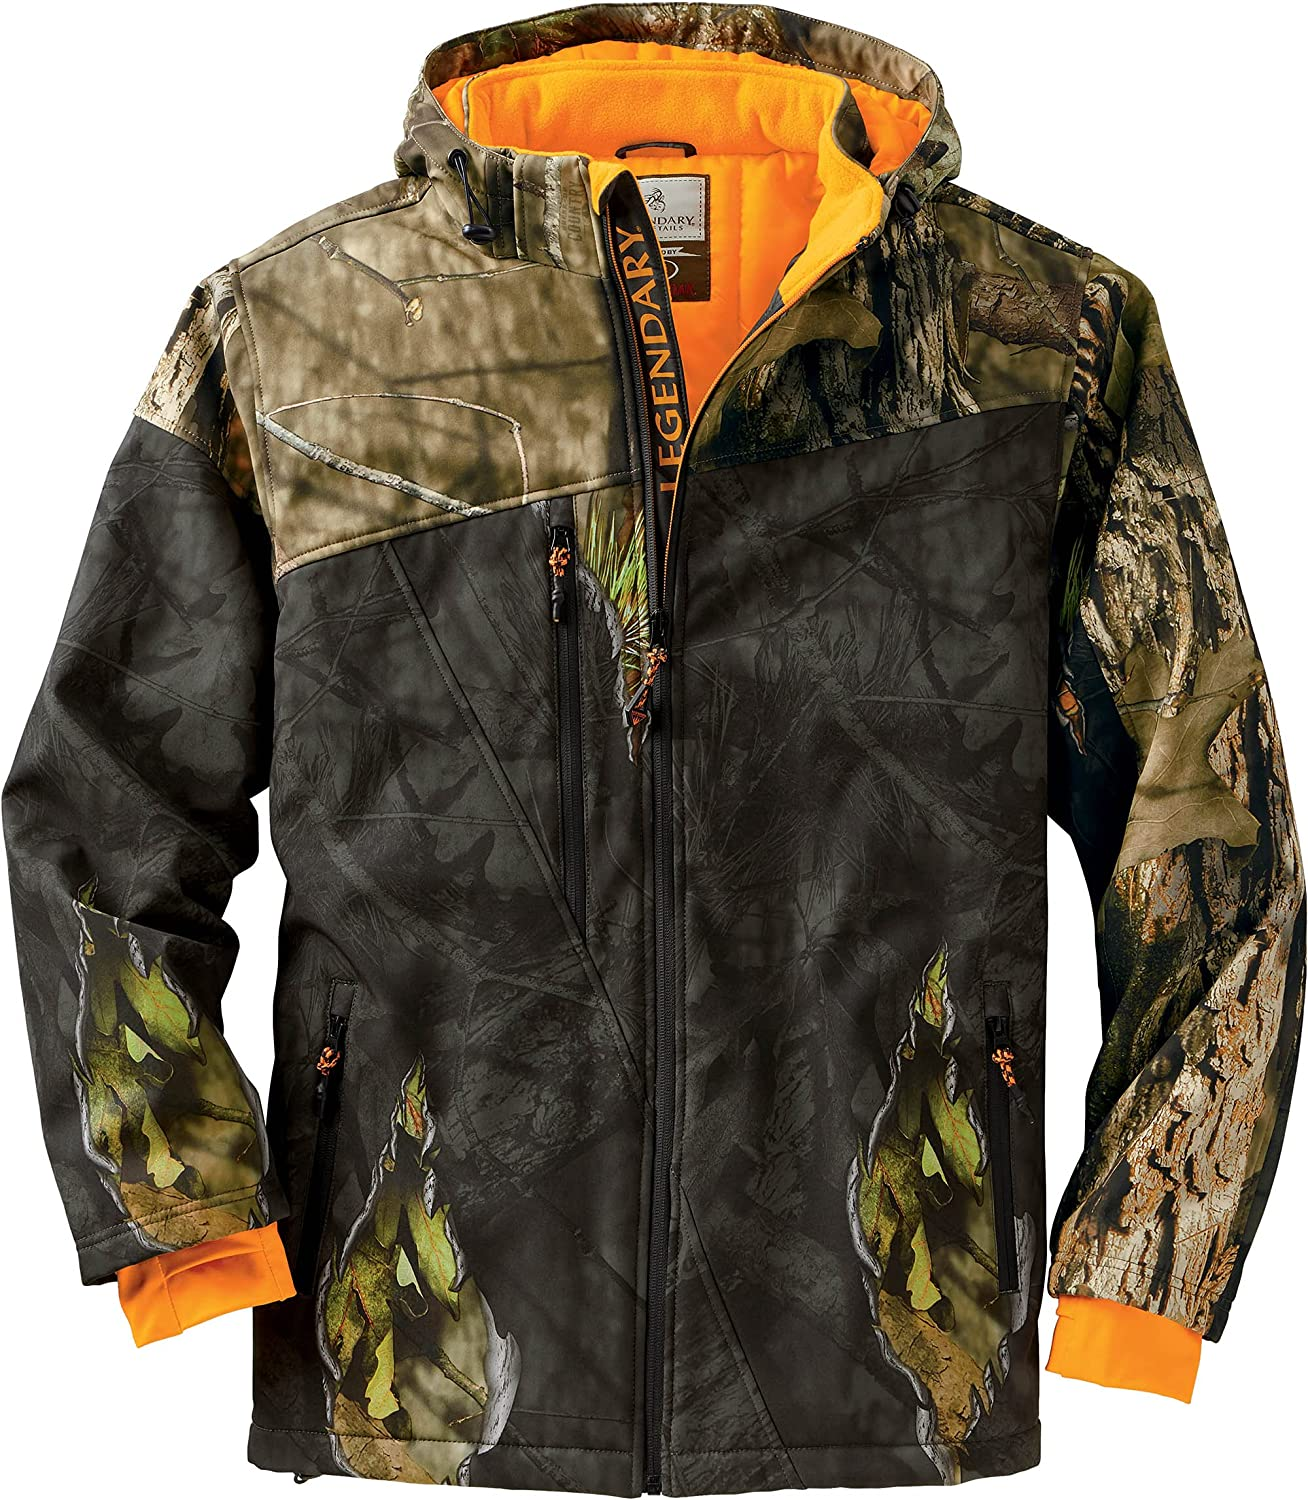 Legendary Whitetails Men's Timber Line Insulated Softshell Jacket